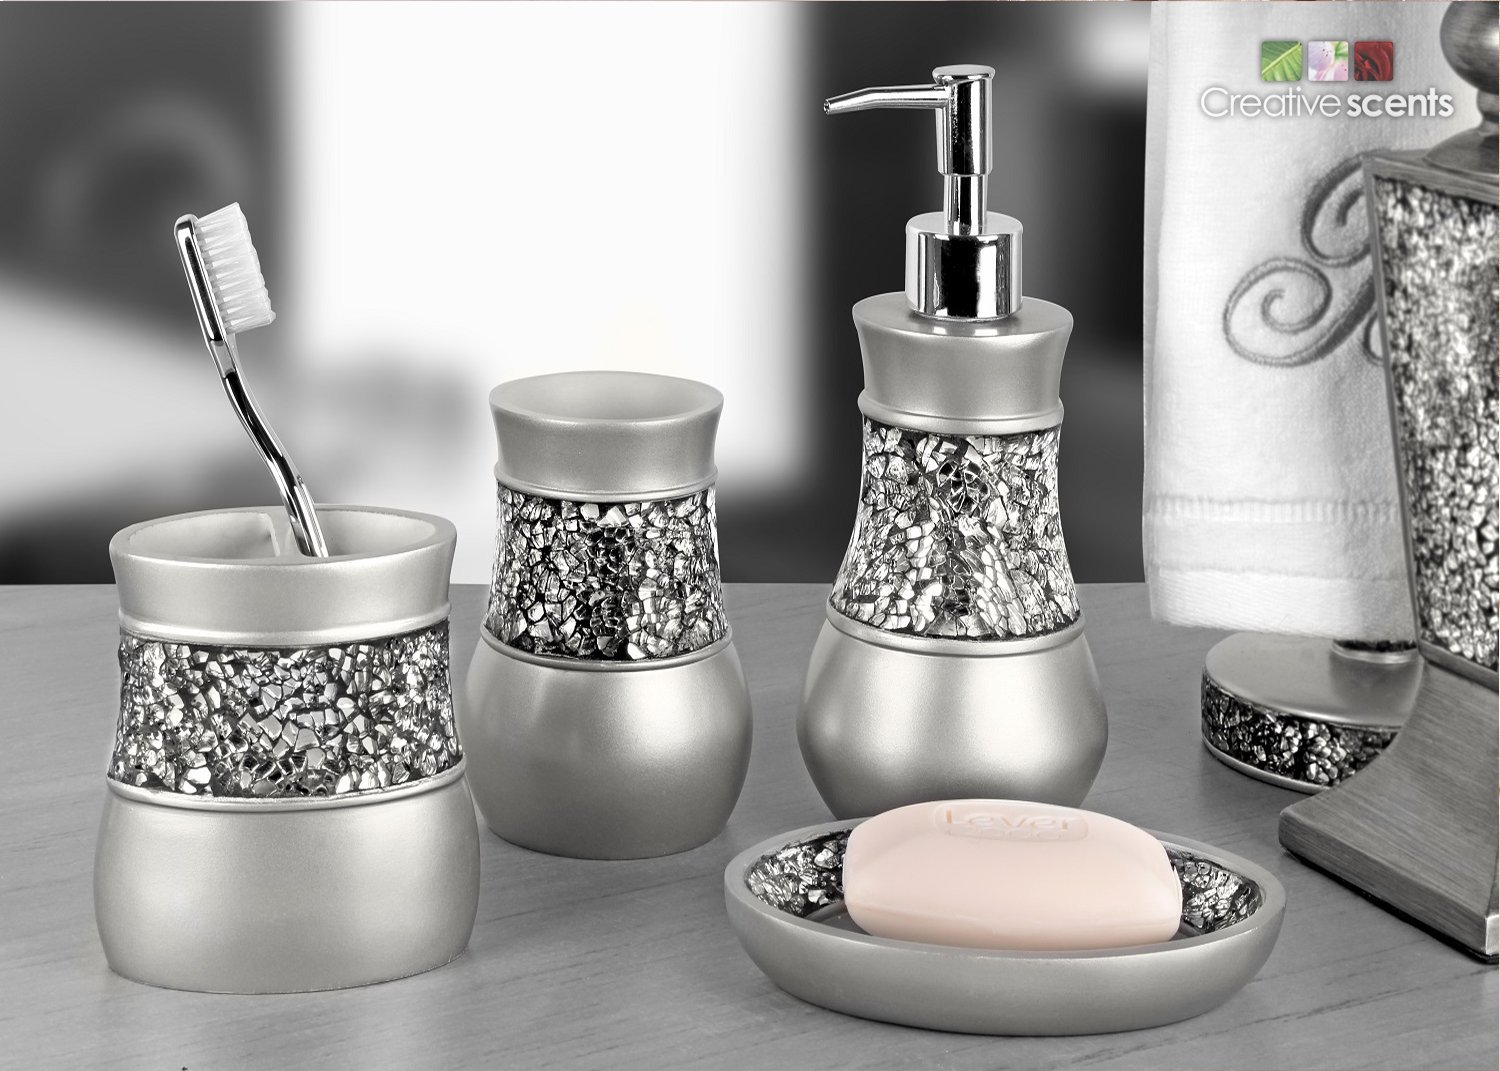 Exceptionnel Amazon.com: Creative Scents Bathroom Accessories Set, 4 Piece Bath  Ensemble, Bath Set Collection Features Soap Dispenser Pump, Toothbrush  Holder, Tumbler, ...